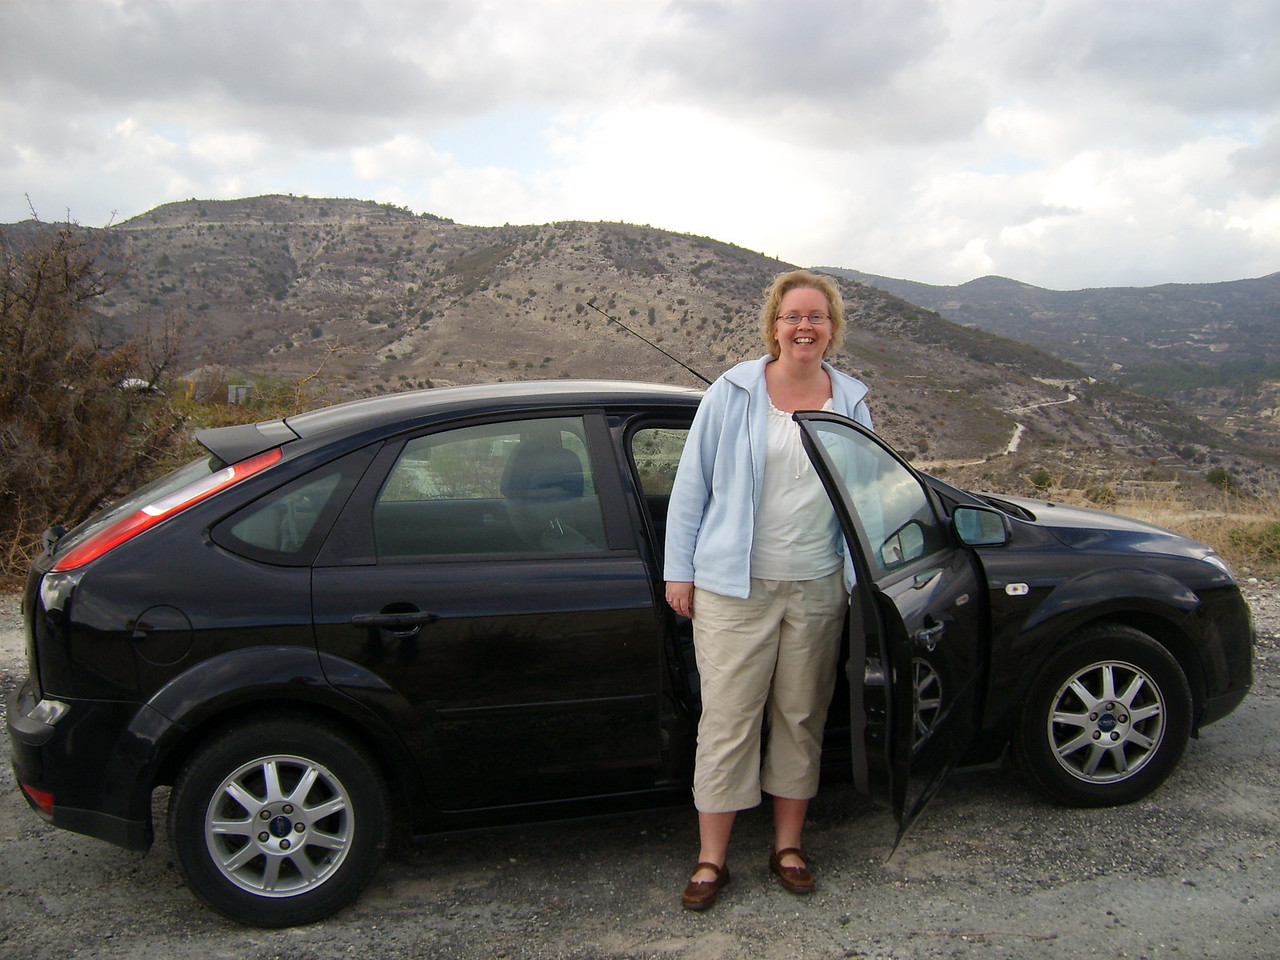 Here's me! First time driving in an English car, steering wheel on the right, driving on the left hand side of the road...<br /> Went surprisingly well actually.